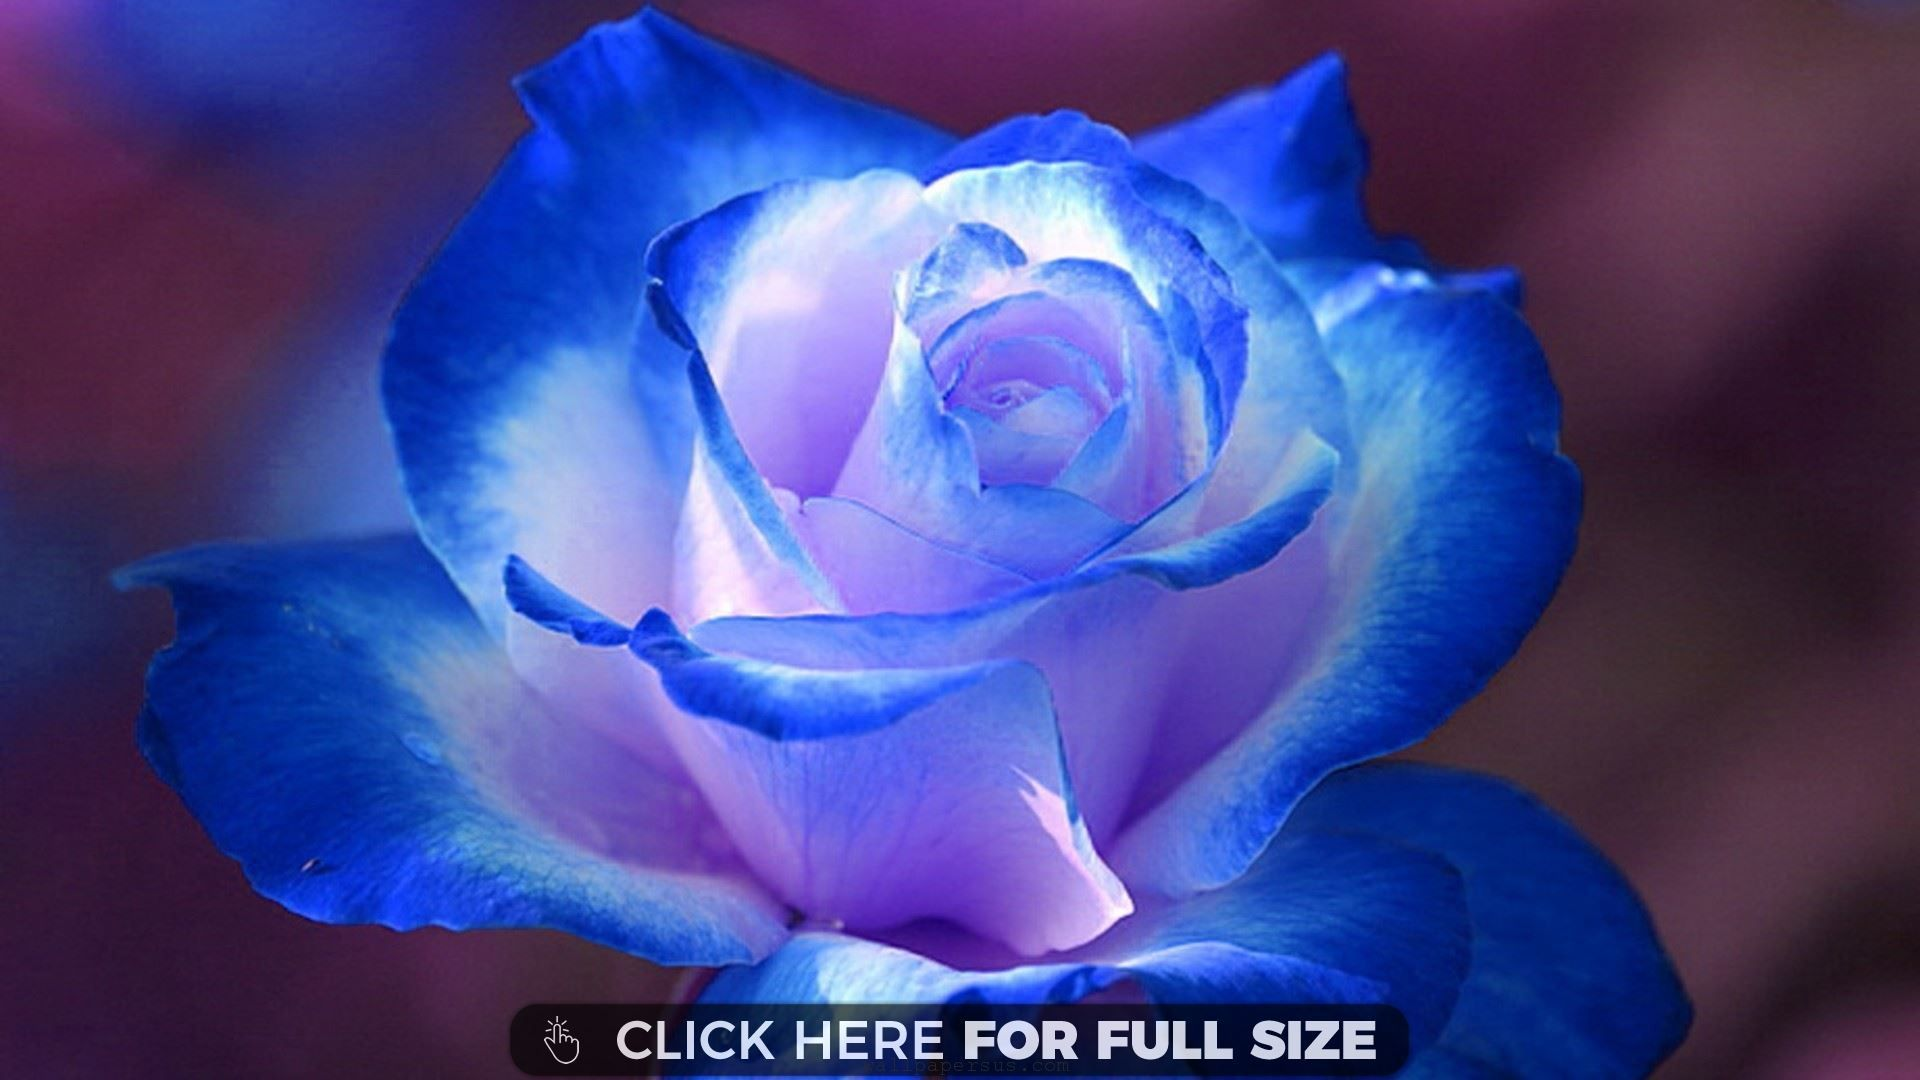 Rose Flower Picture Flip Wallpapers Download Free Wallpaper Hd Blue Roses Wallpaper Rose Flower Pictures Beautiful Flowers Wallpapers